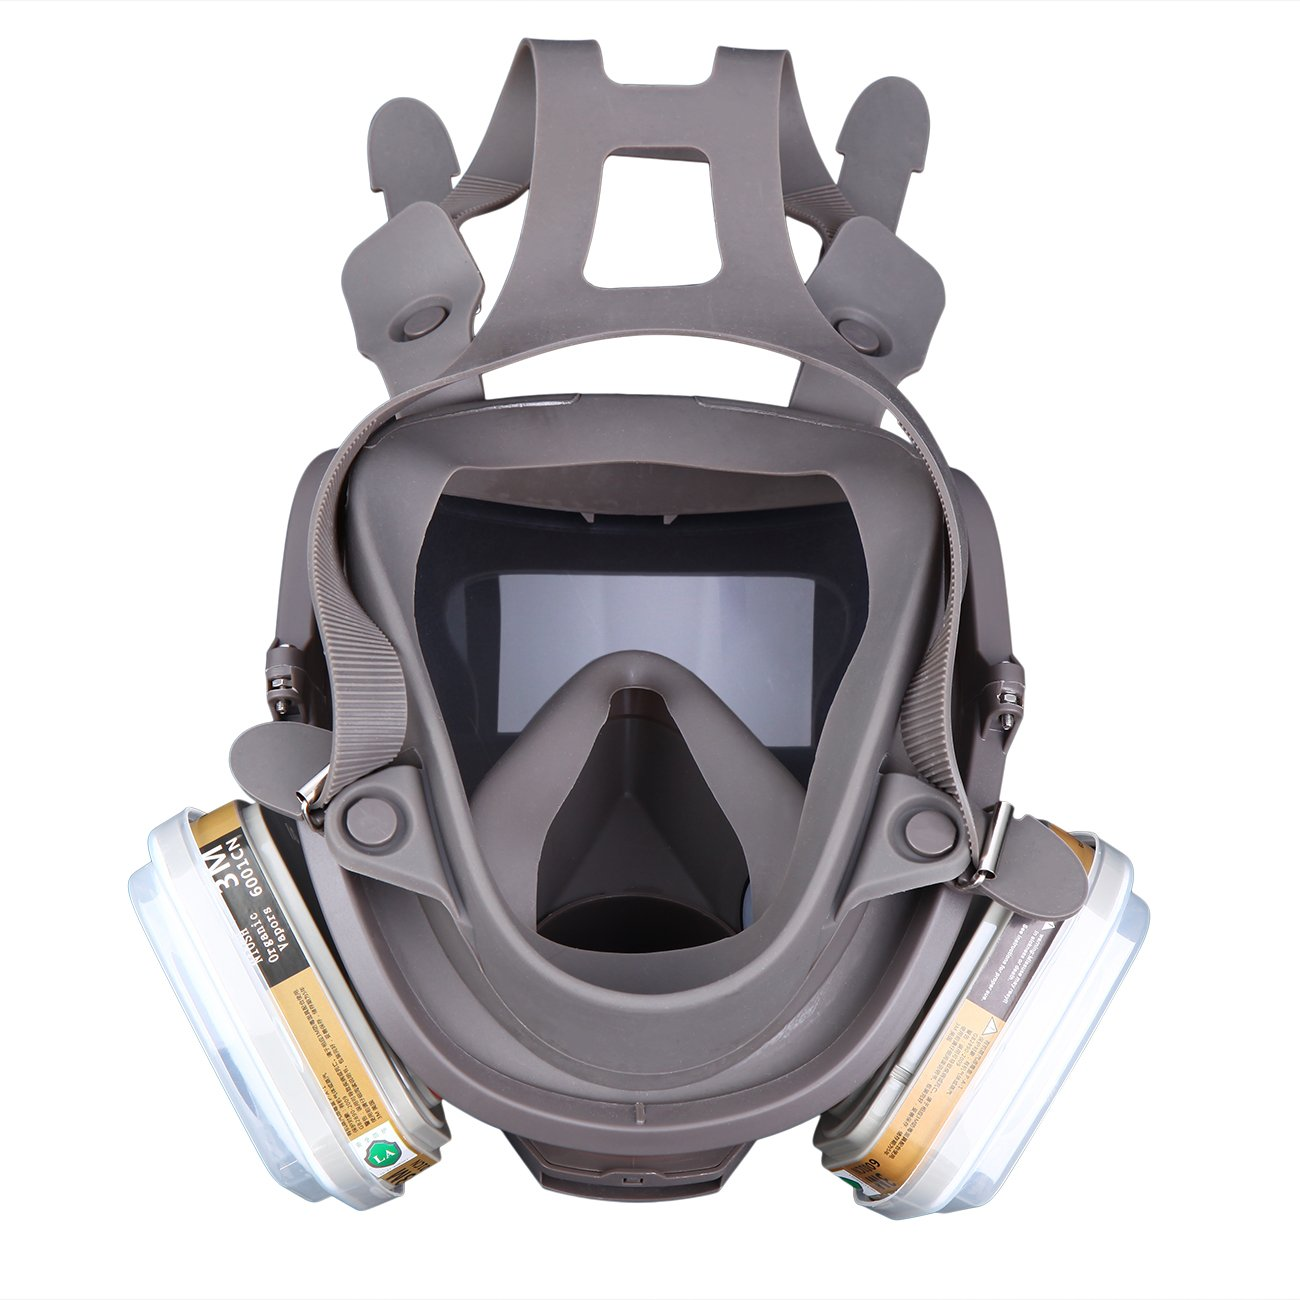 Yunge Full Face Respirator Gas Mask For 6800 Painting Spraying(15 in 1)Facepiece Respirator- Industrial Grade Quality by YungeEquipmentUS (Image #7)